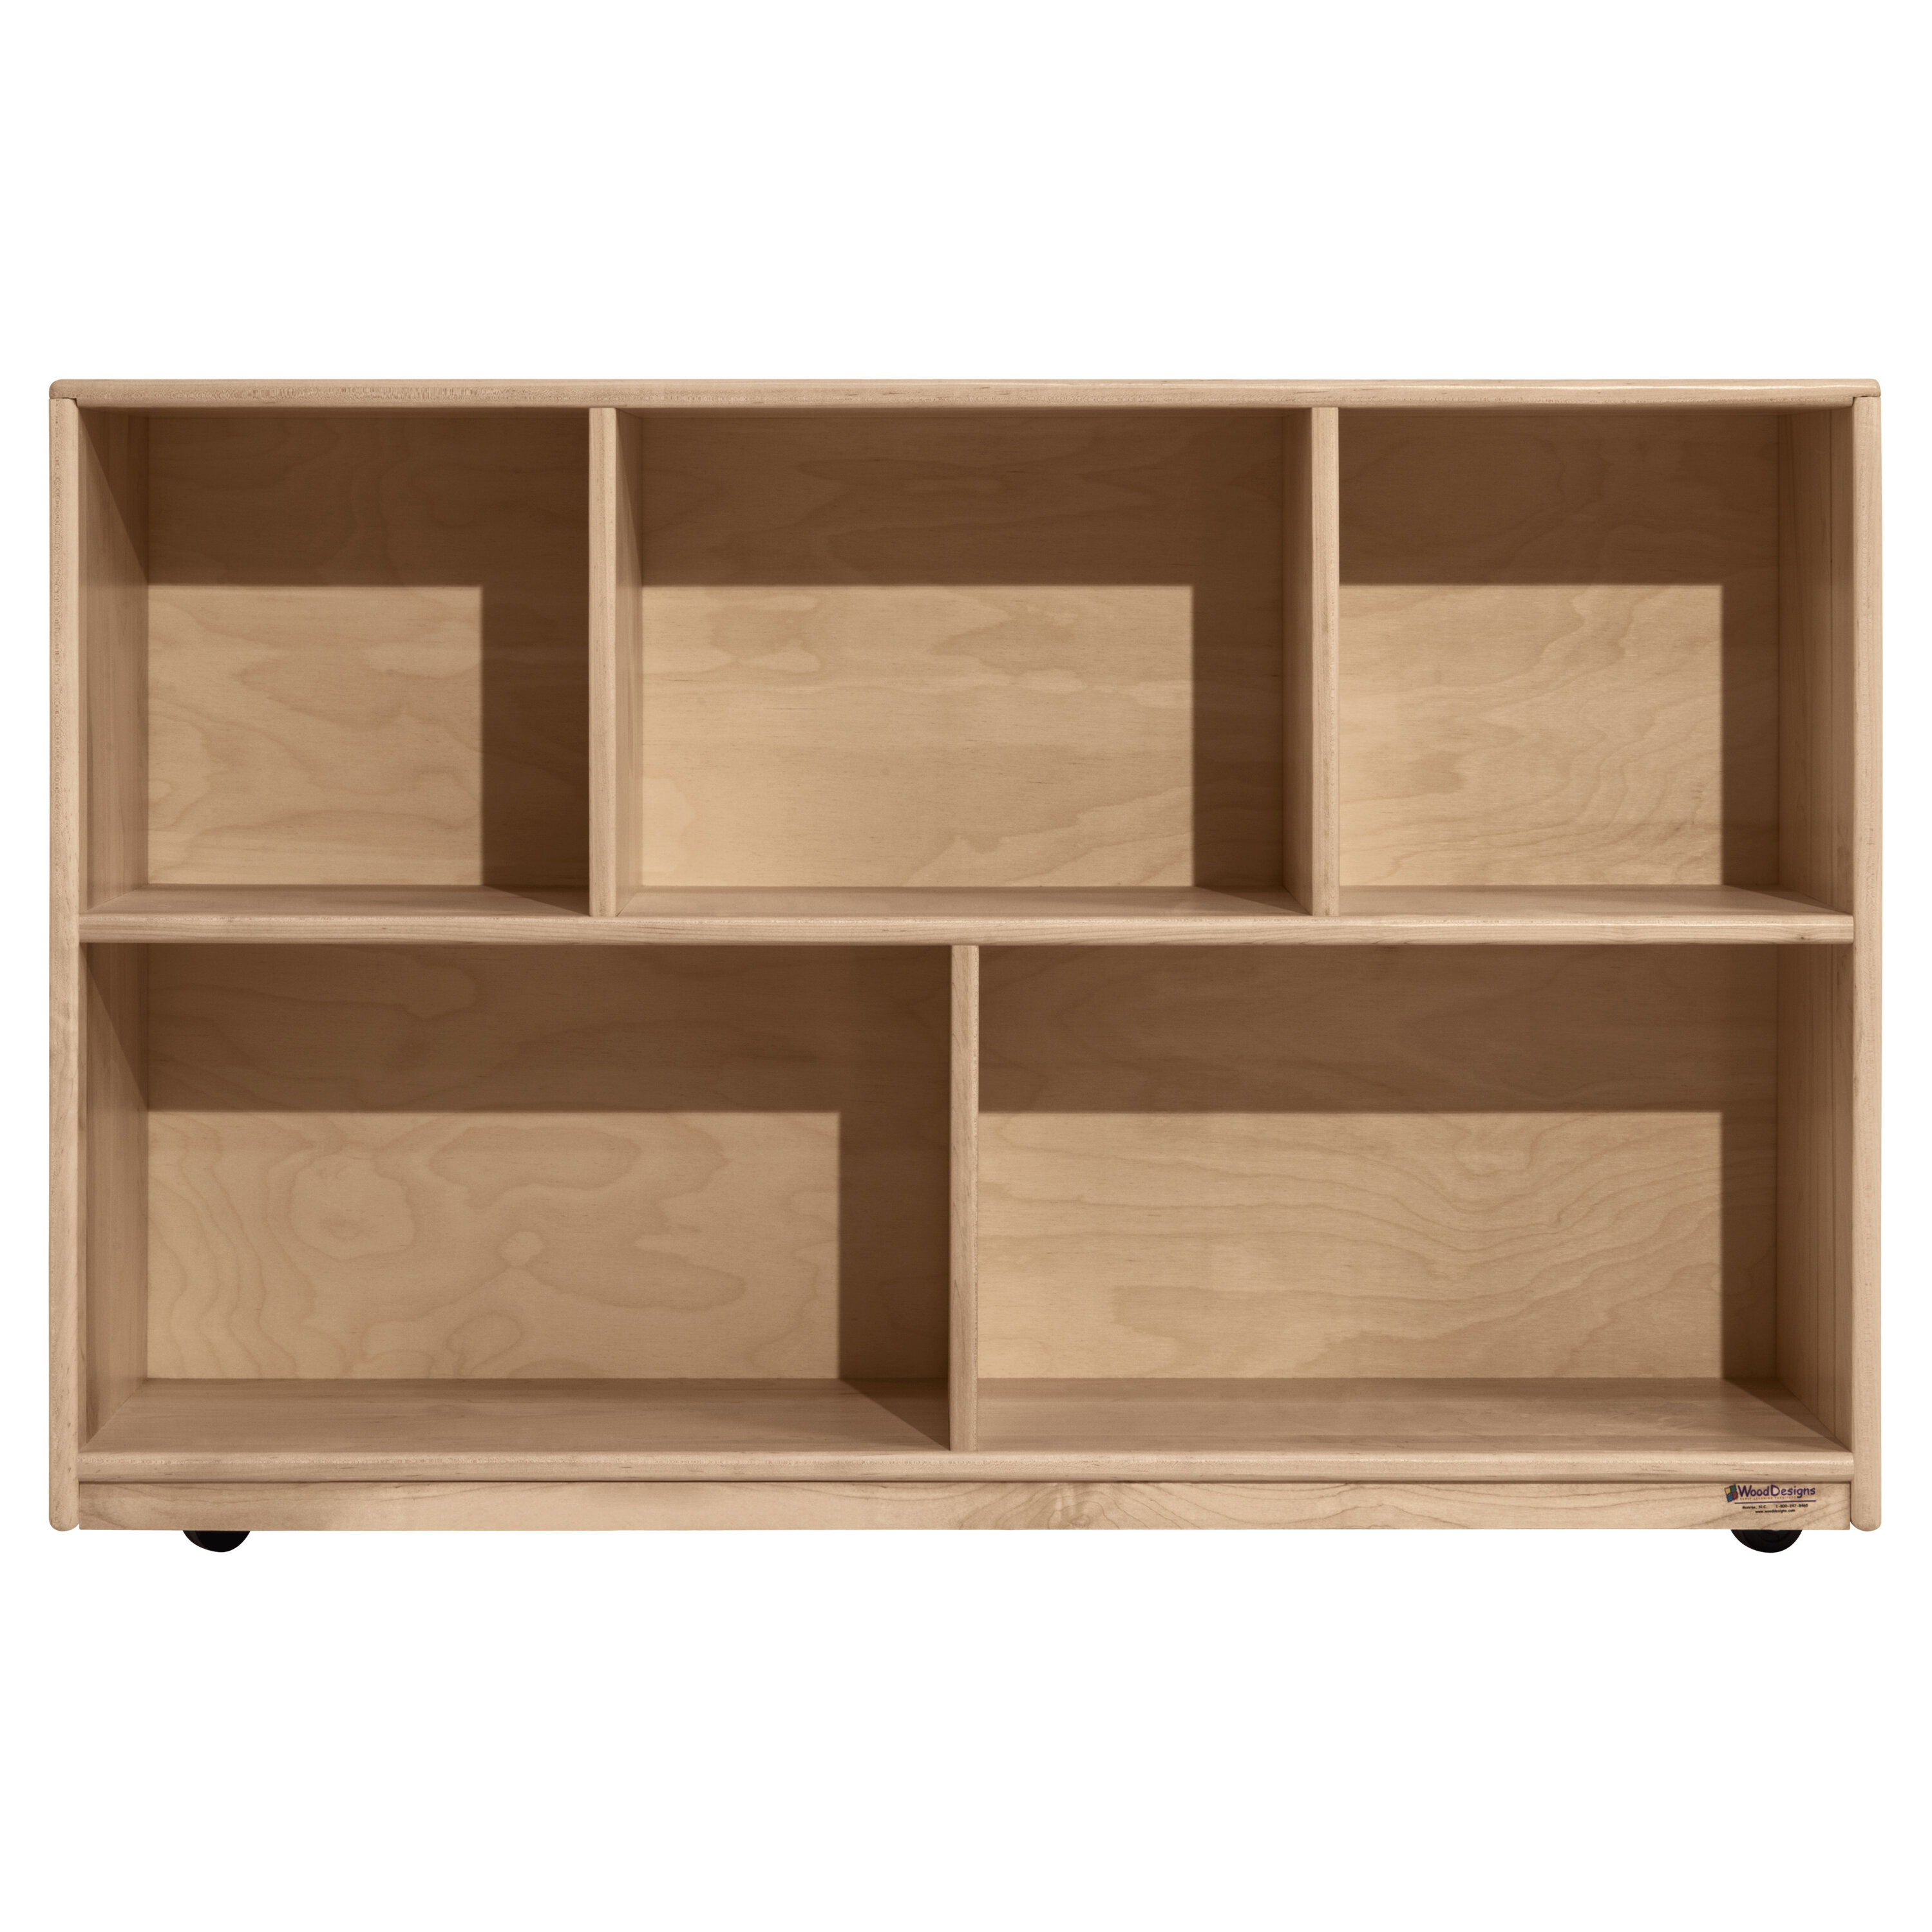 Wood Designs Maple Heritage 5 Compartment Shelving Unit With Casters Wayfair